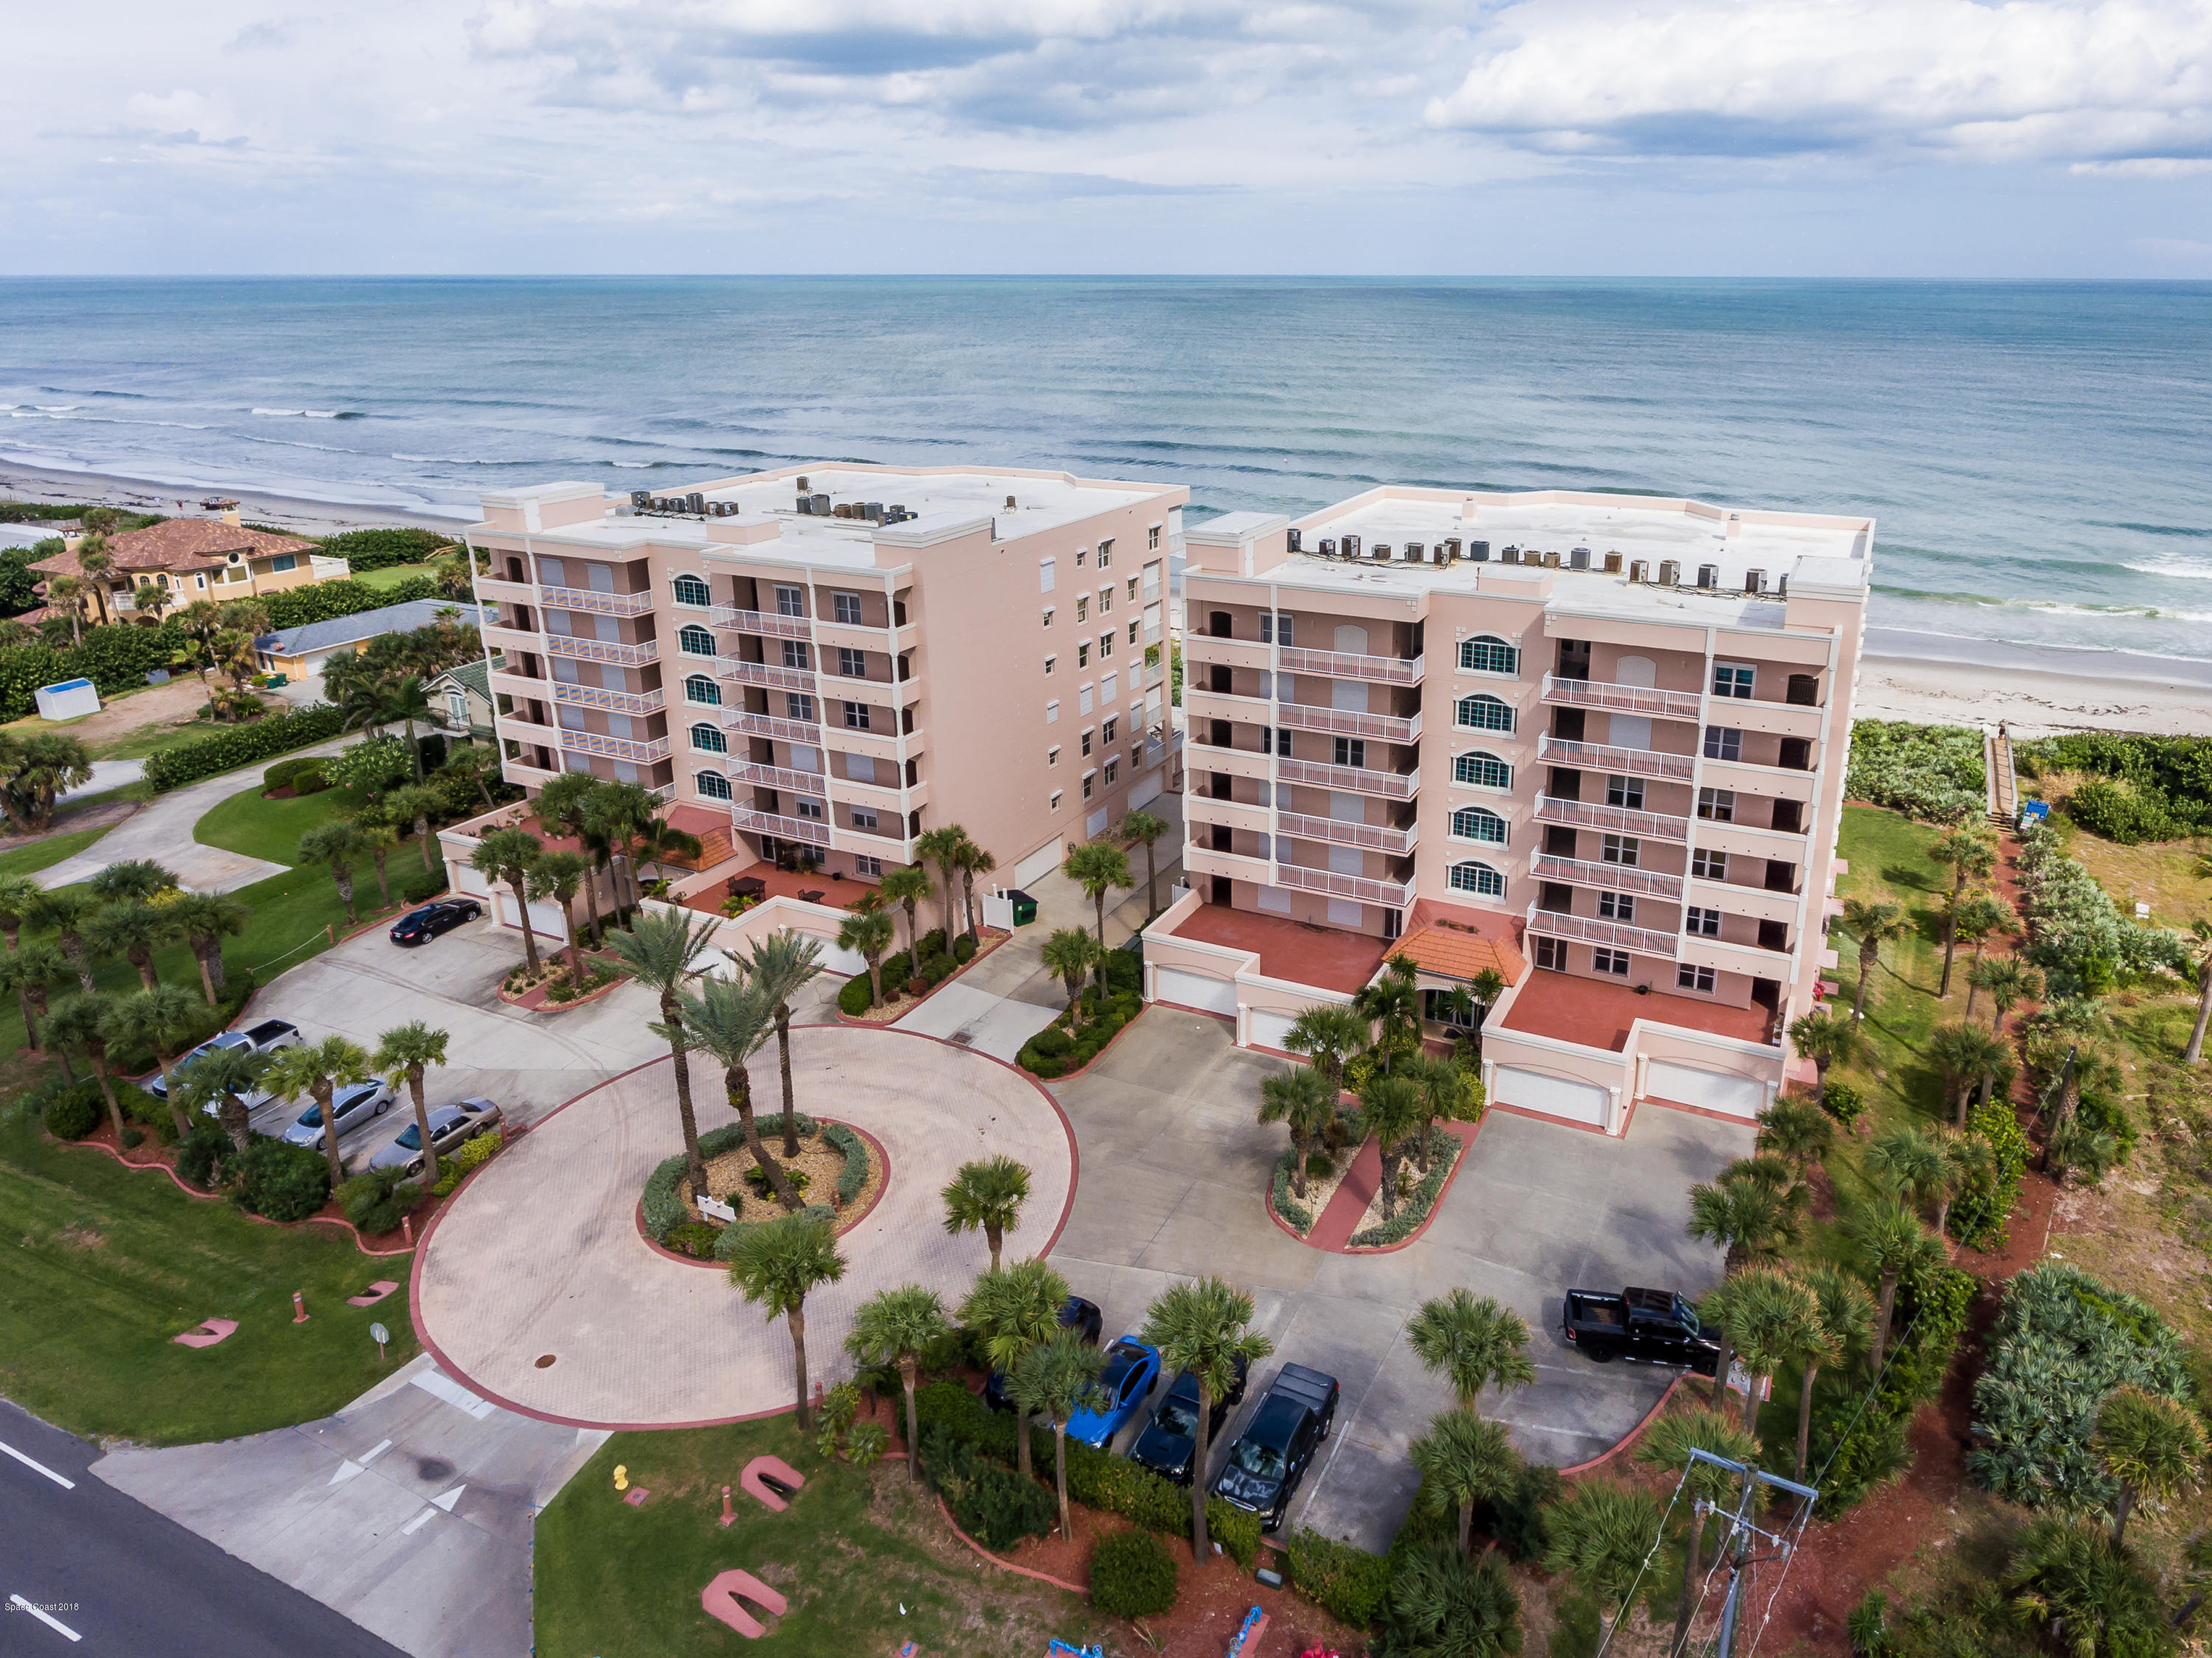 Single Family Home for Sale at 1845 N Highway A1a 1845 N Highway A1a Indialantic, Florida 32903 United States